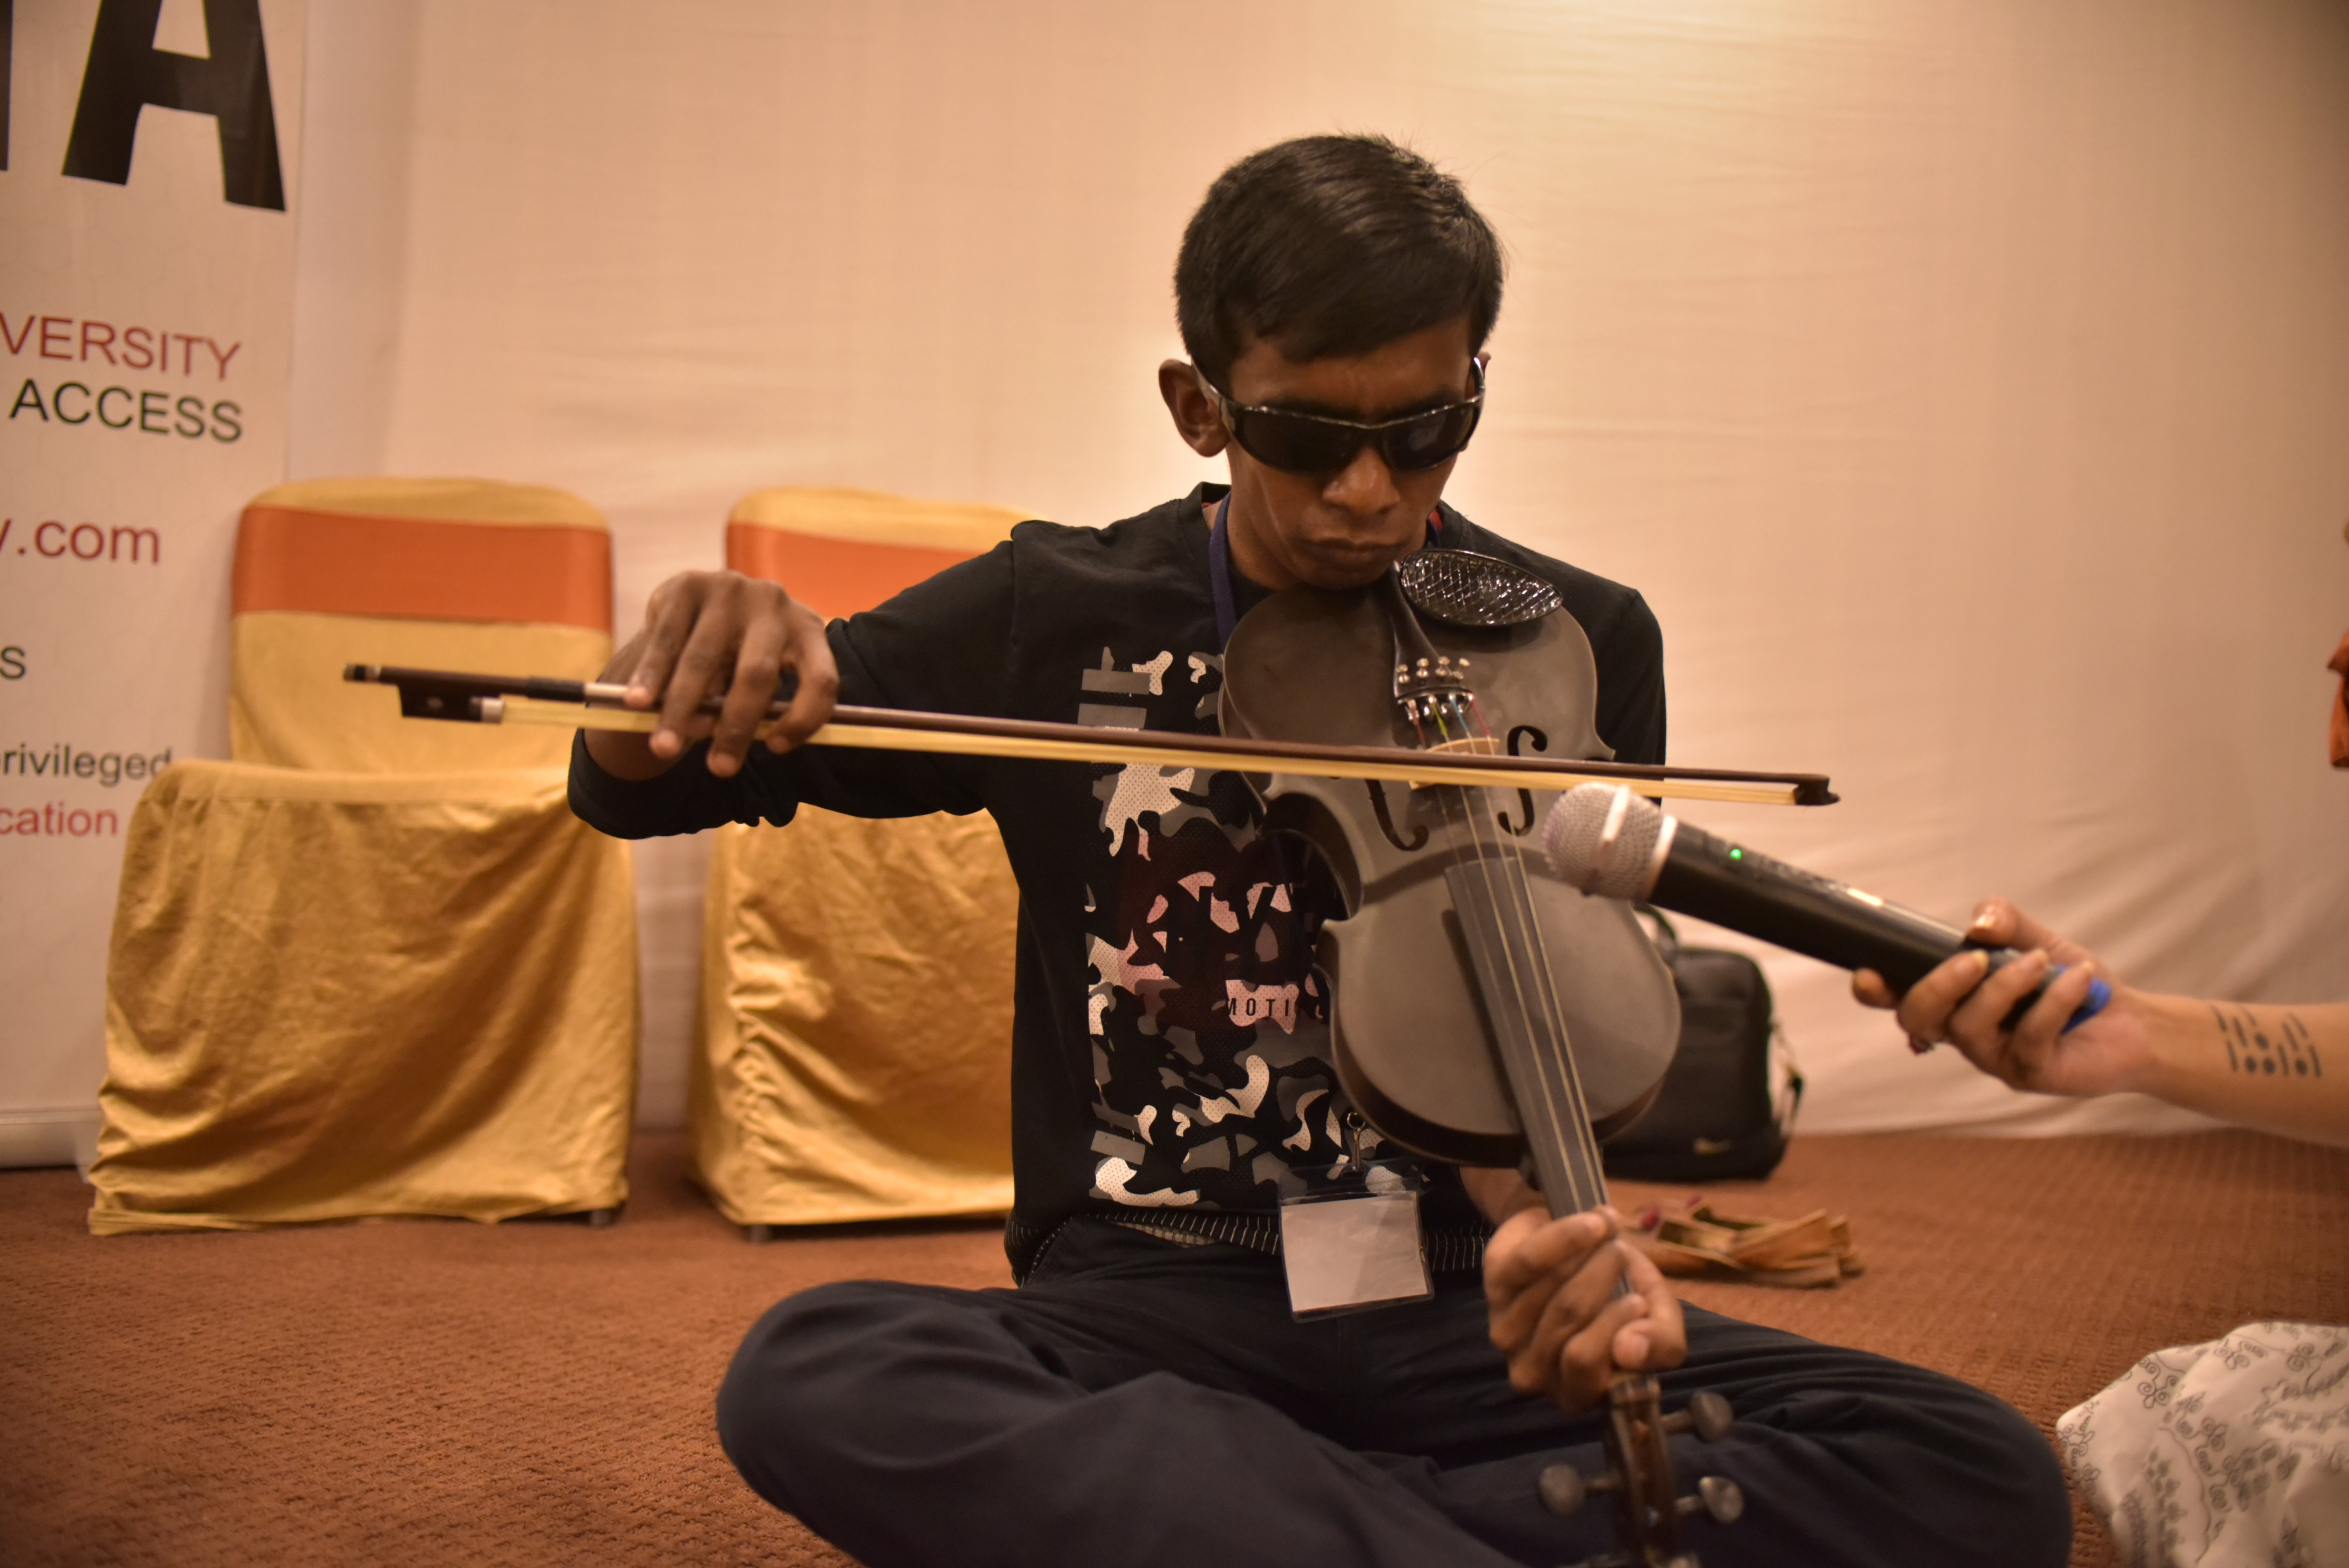 A young man sitting and playing a violin. He is wearing black glasses. Someone is holding a mic in front of him.